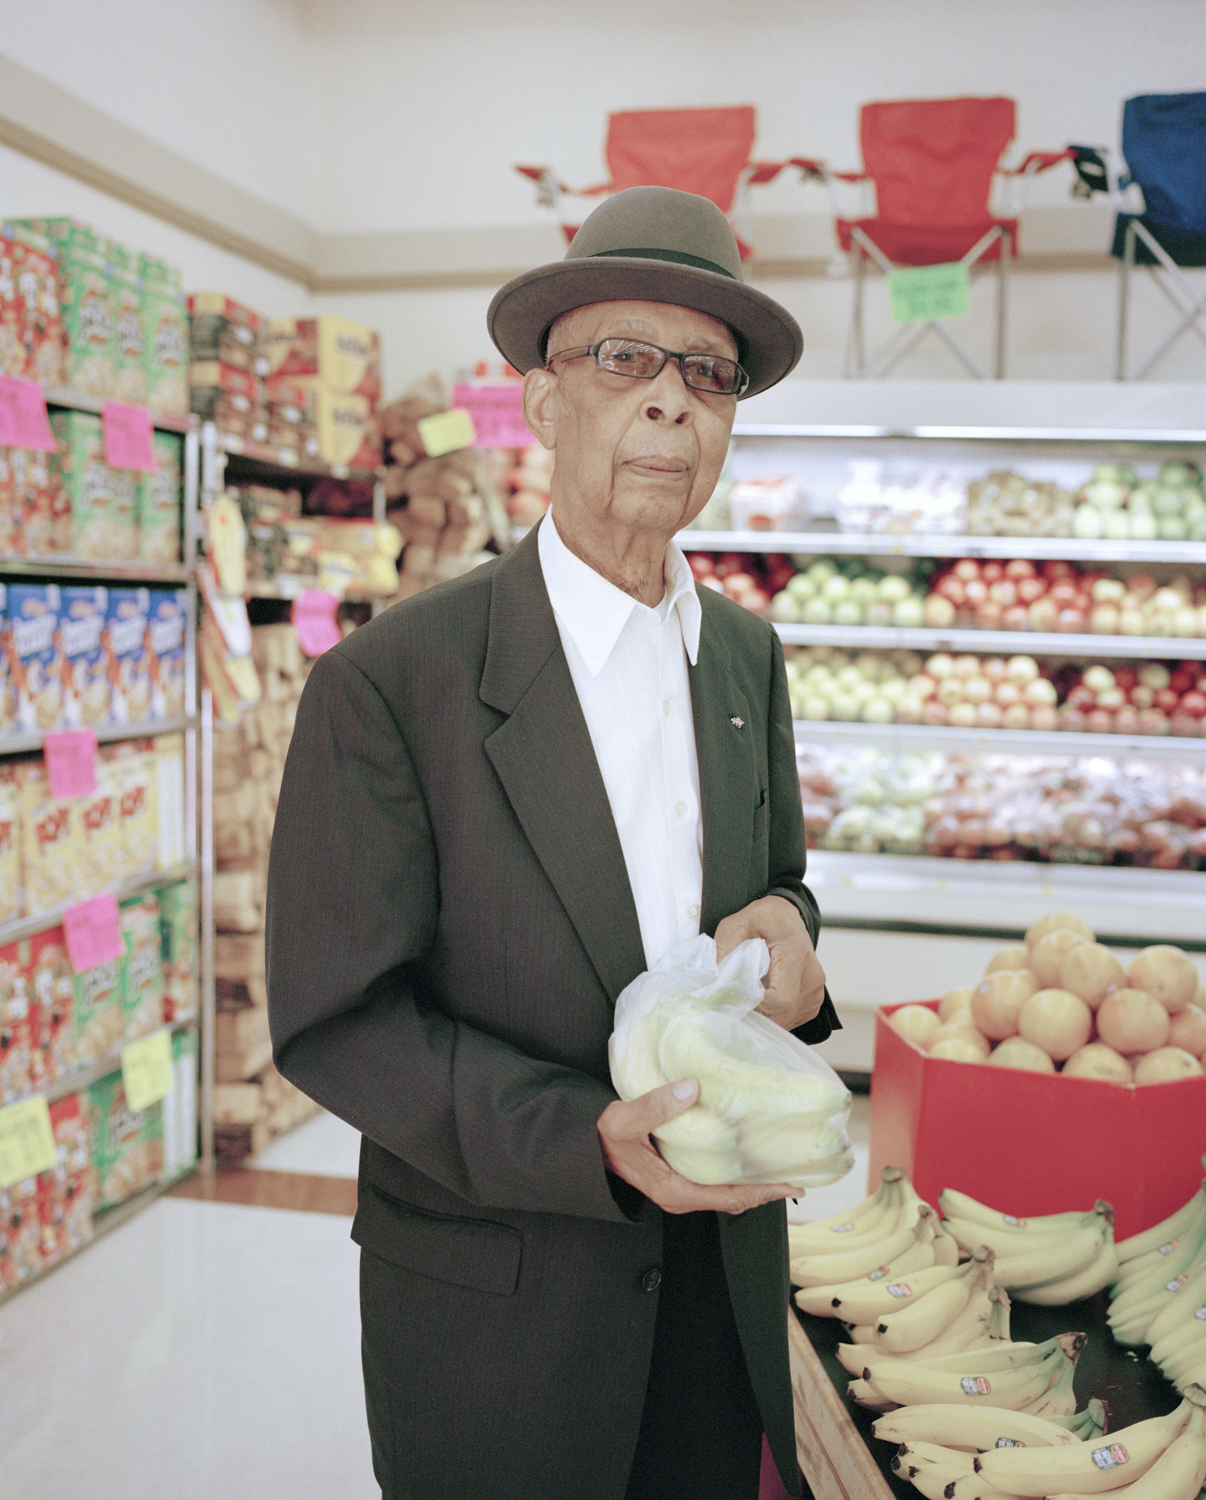 Untitled (Grocery Store Man)  - © Anna Brody